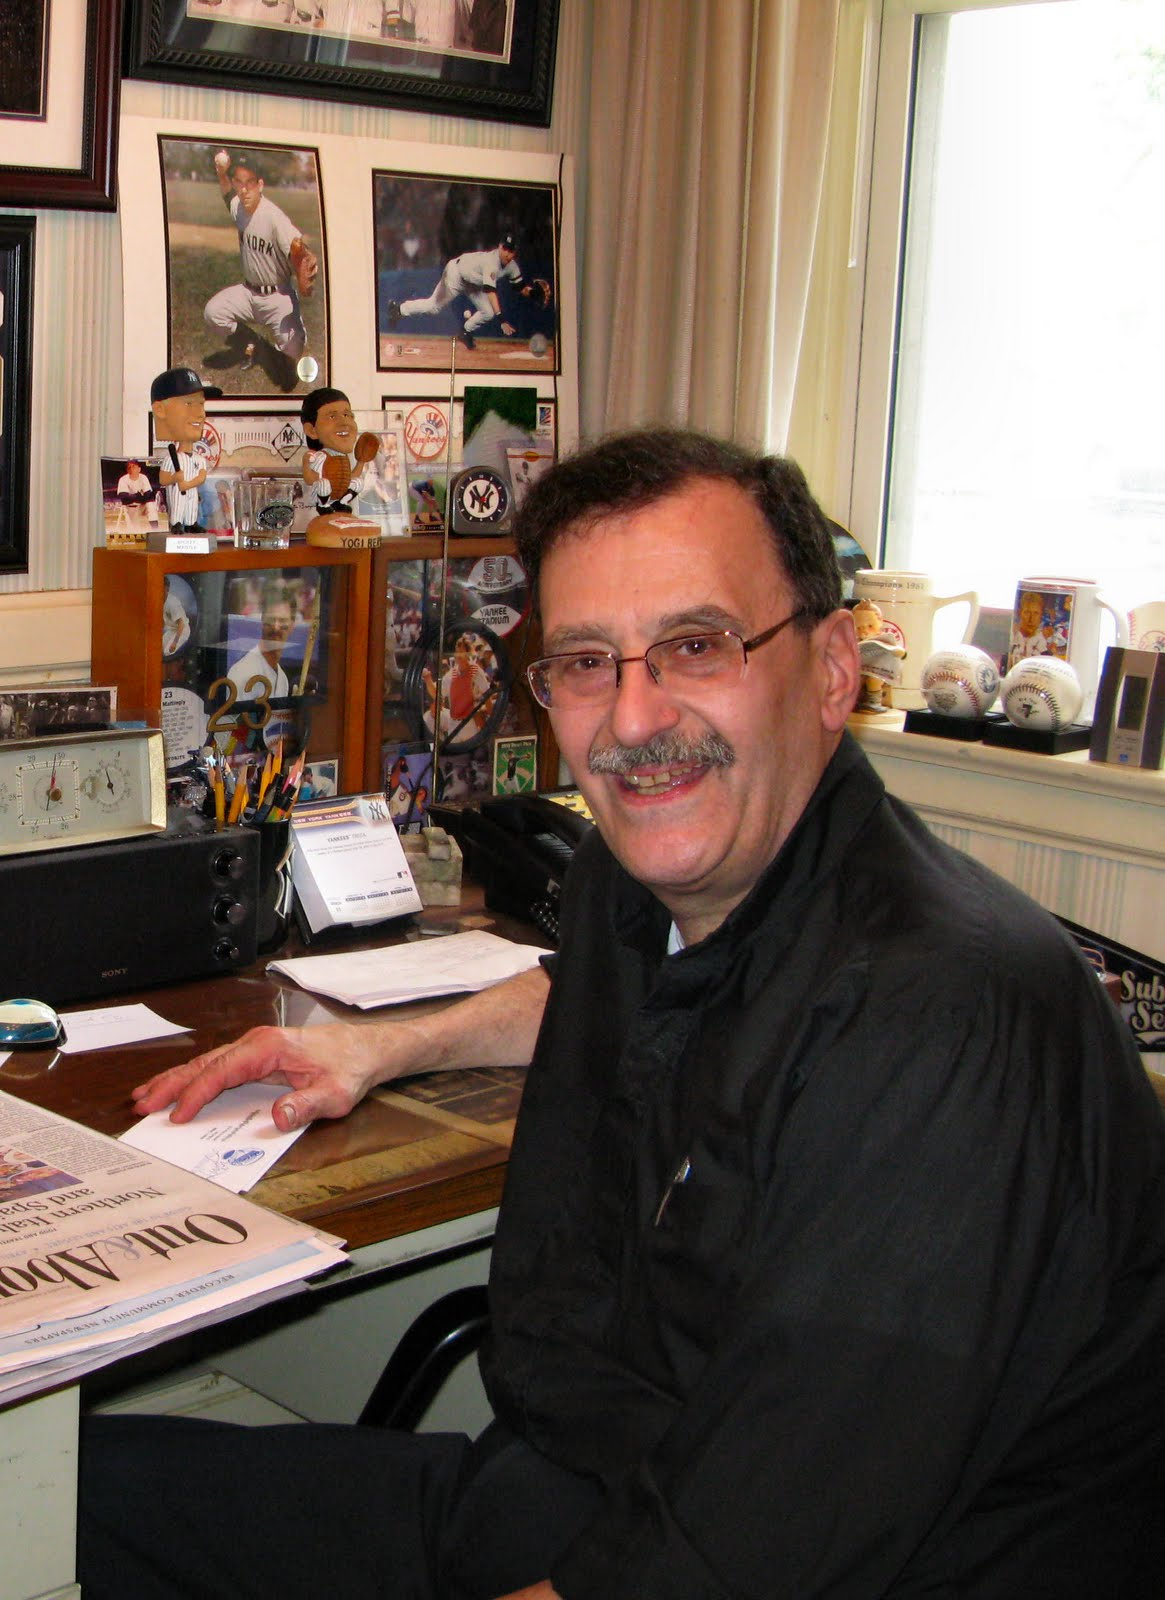 Richard tartaglia